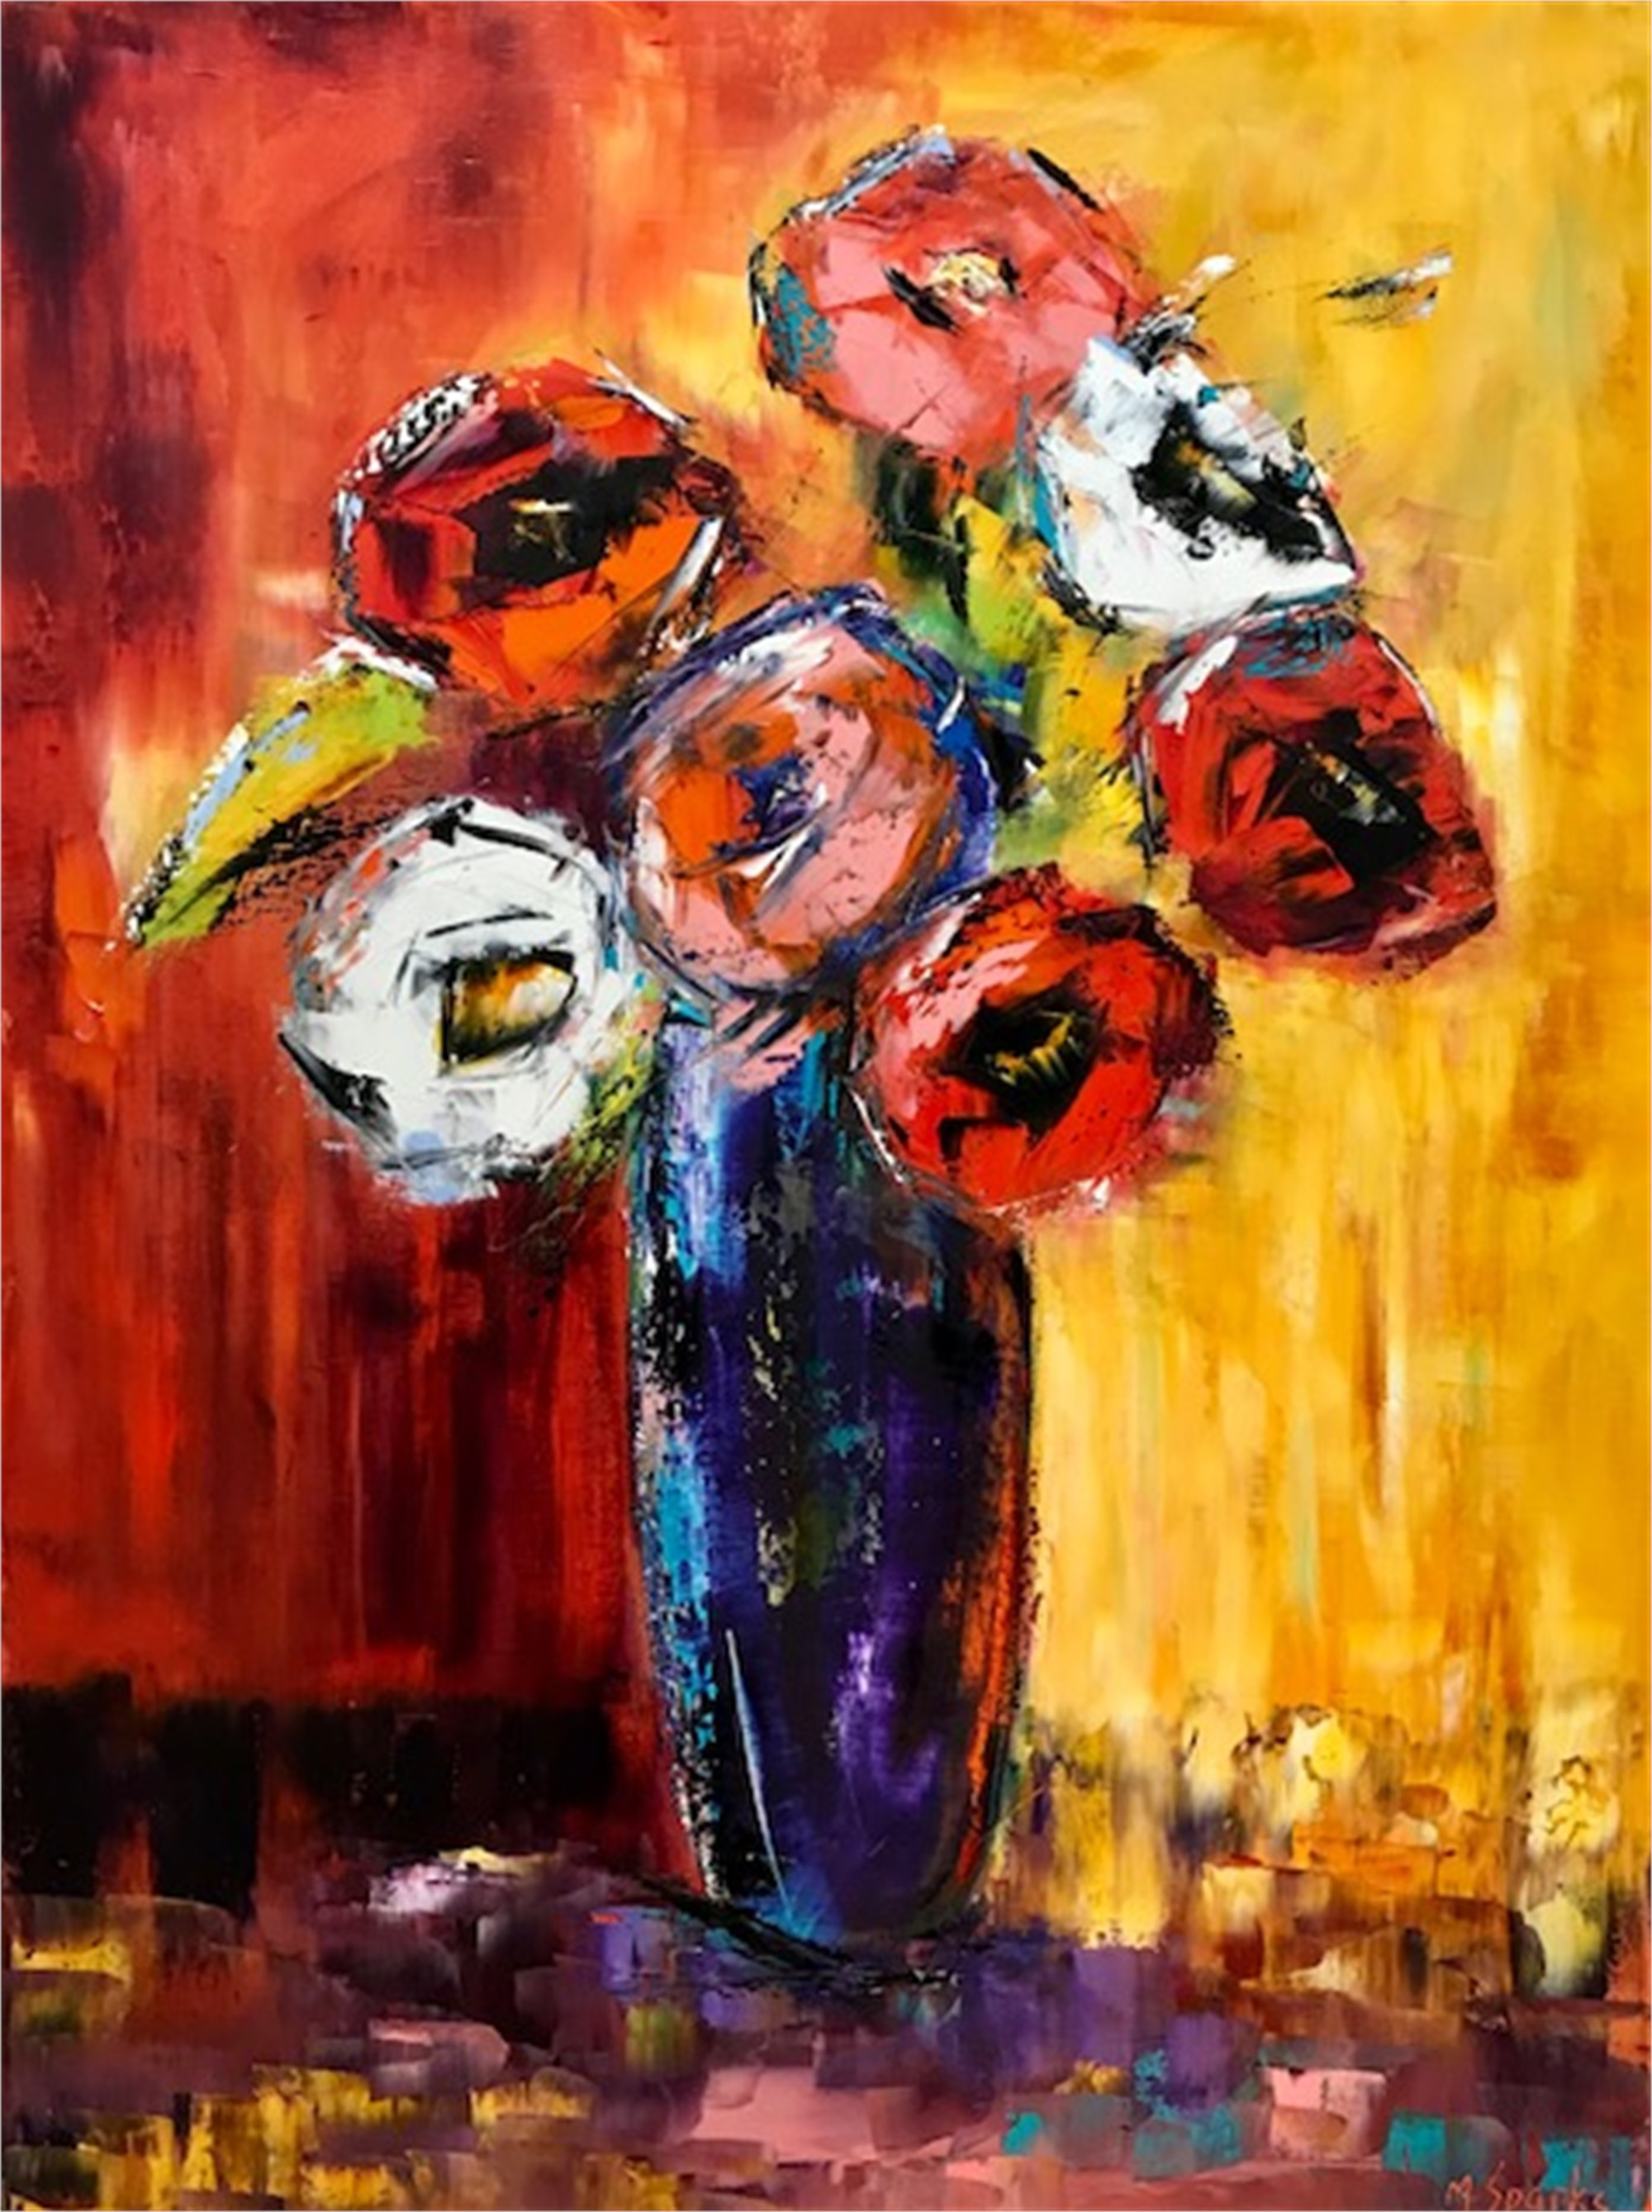 In Full Bloom by Marilyn Sparks